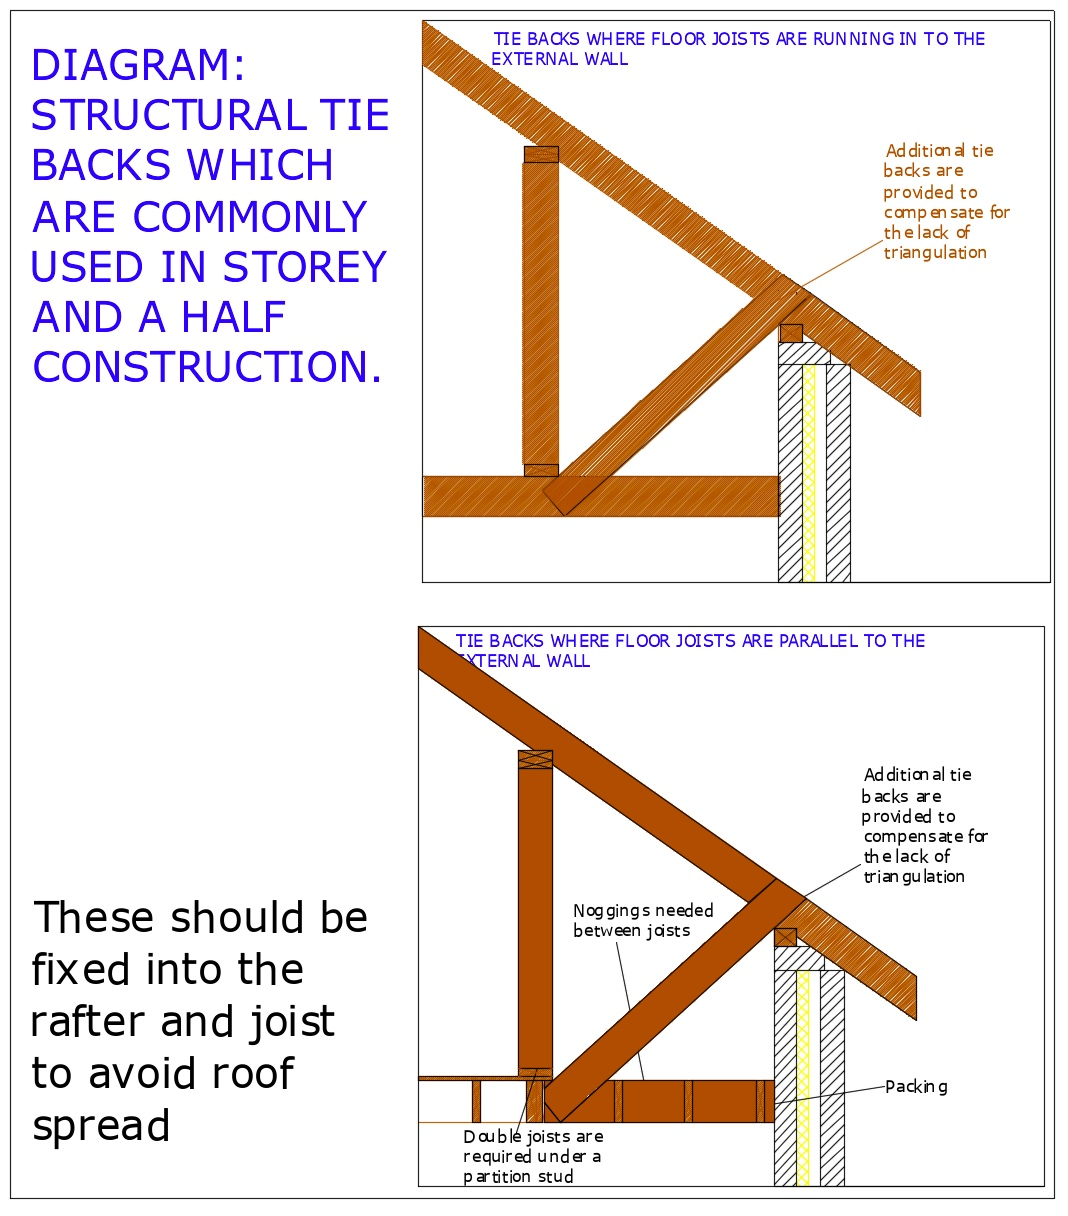 Diagram D51 - Additional tie back storey and a half